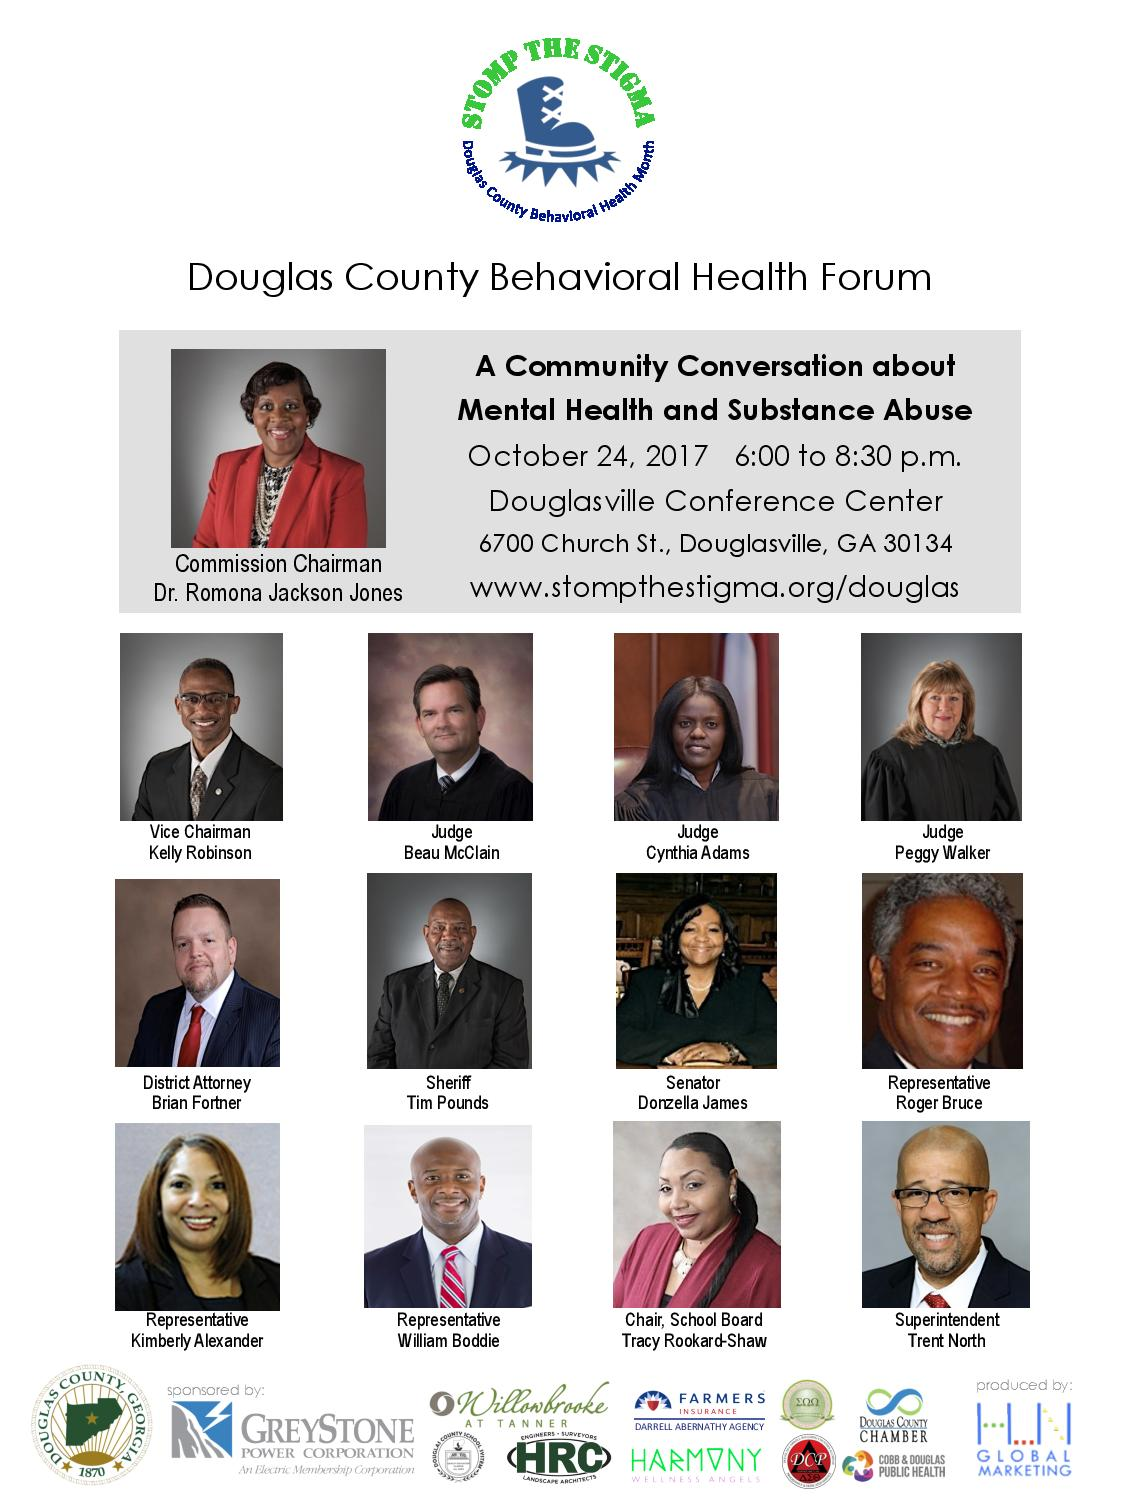 Douglas County_Revised final Behavioral Health Flyer-jpg